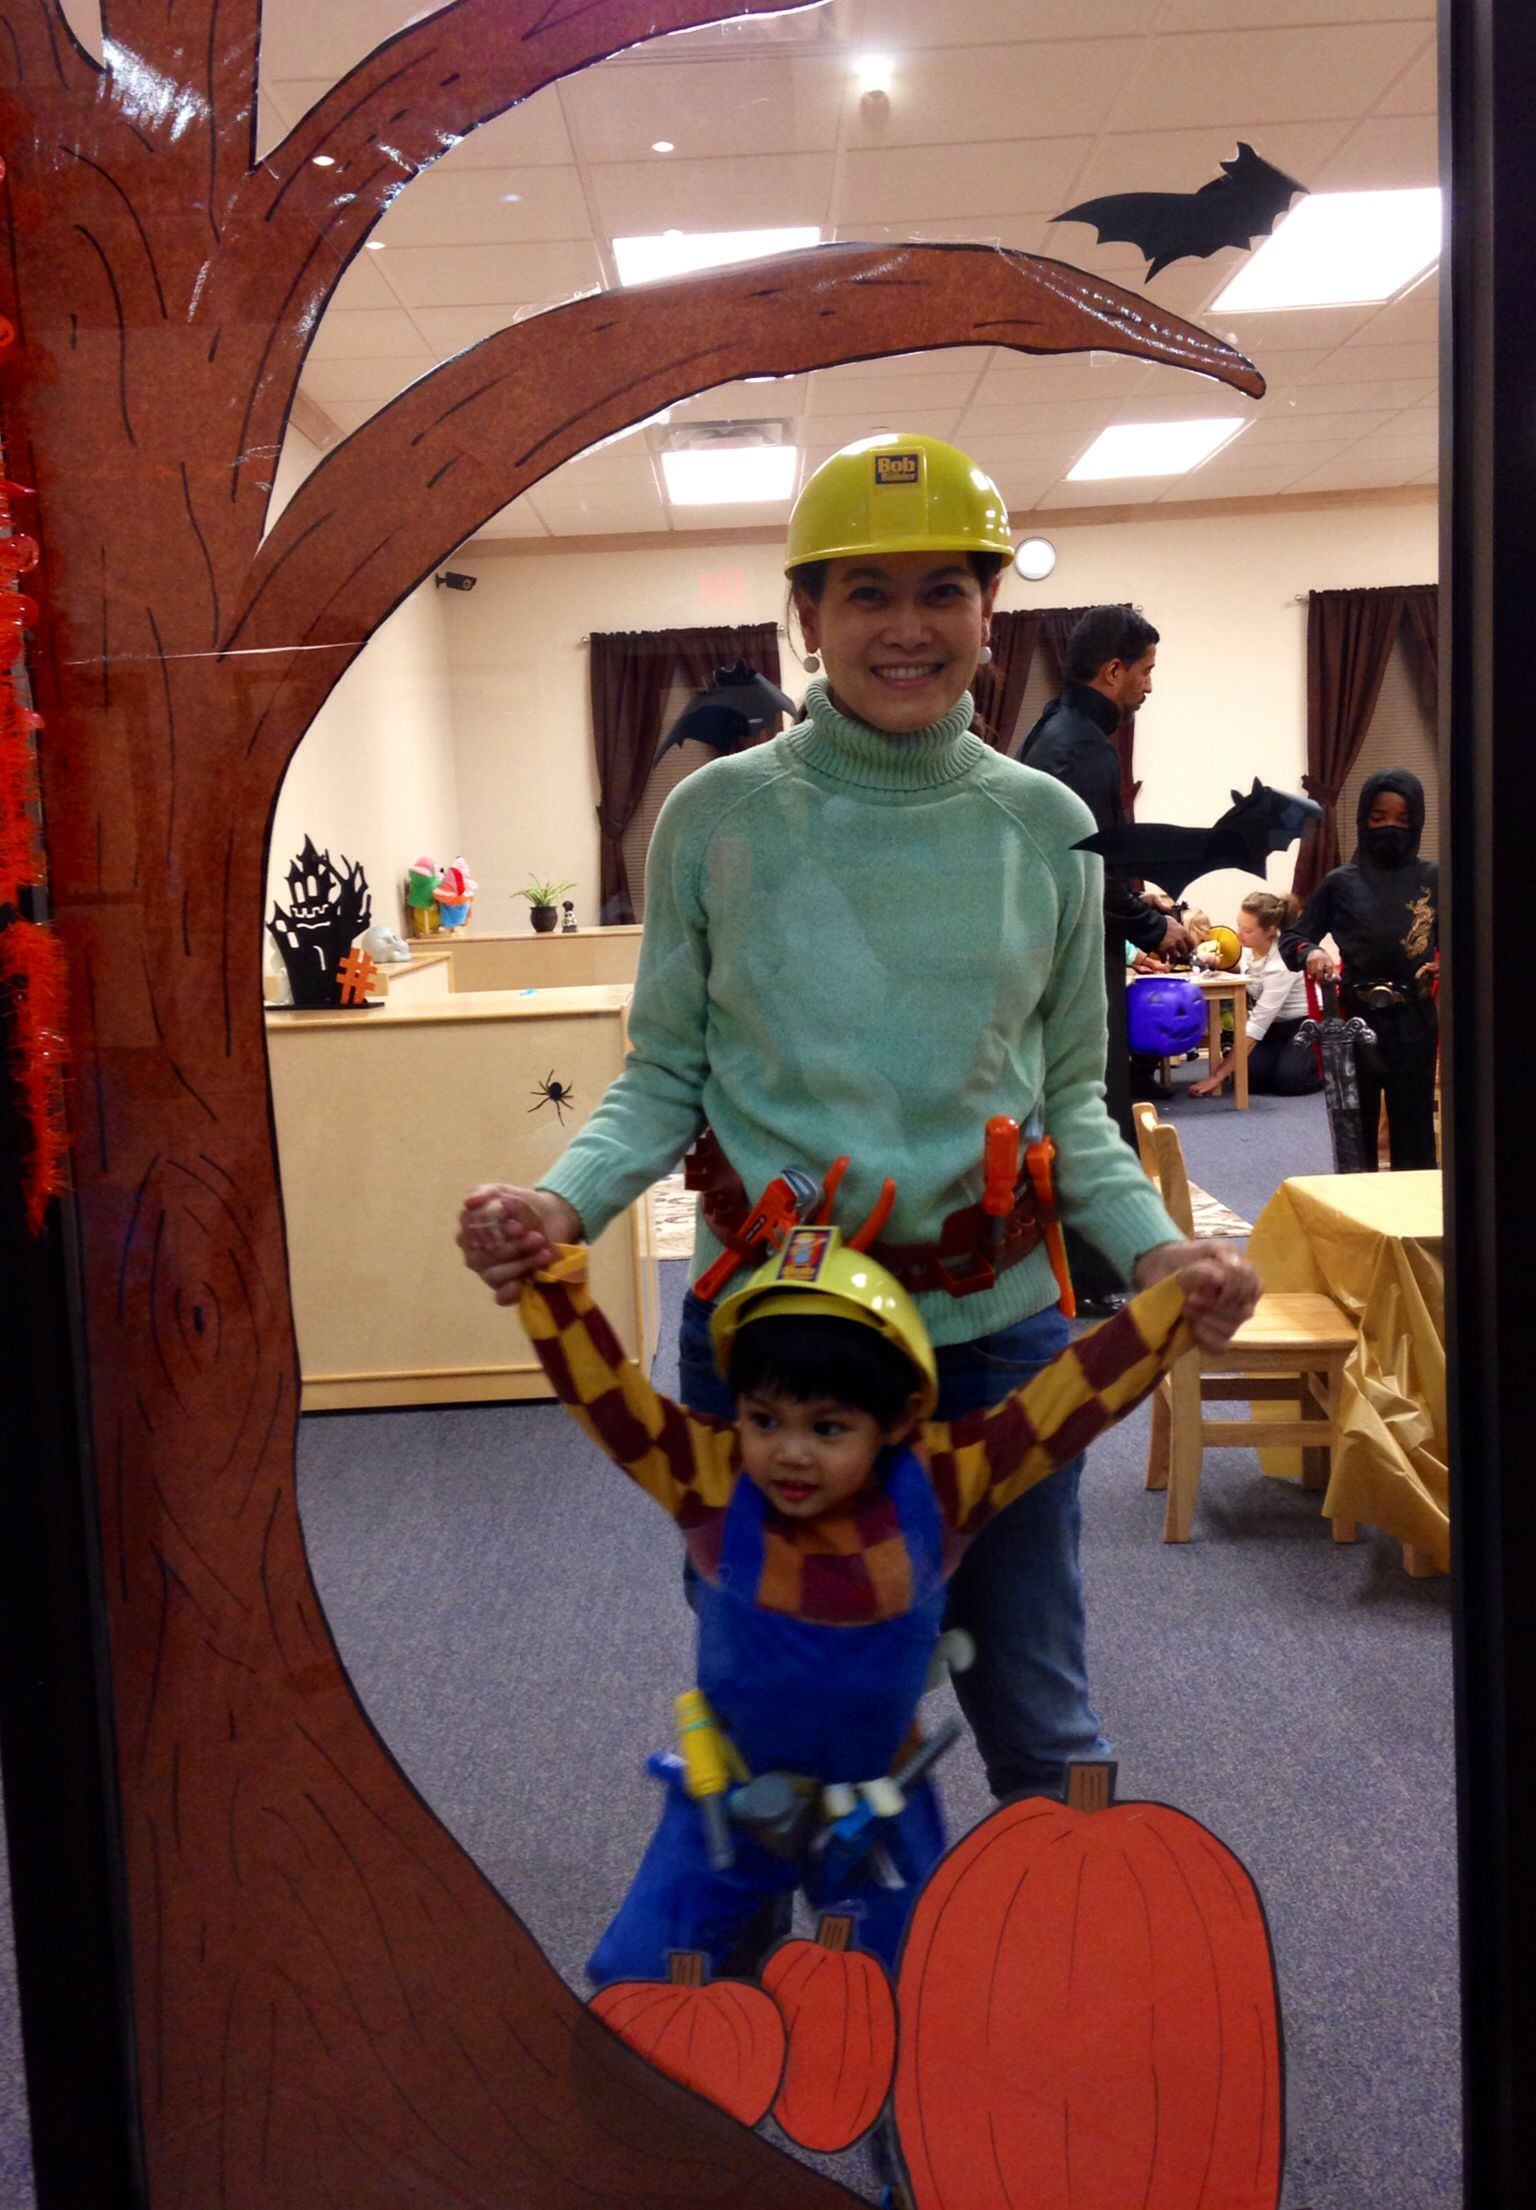 Bob the builder & Wendy costumes - maybe I can rock the Wendy costume to little b's bob costume